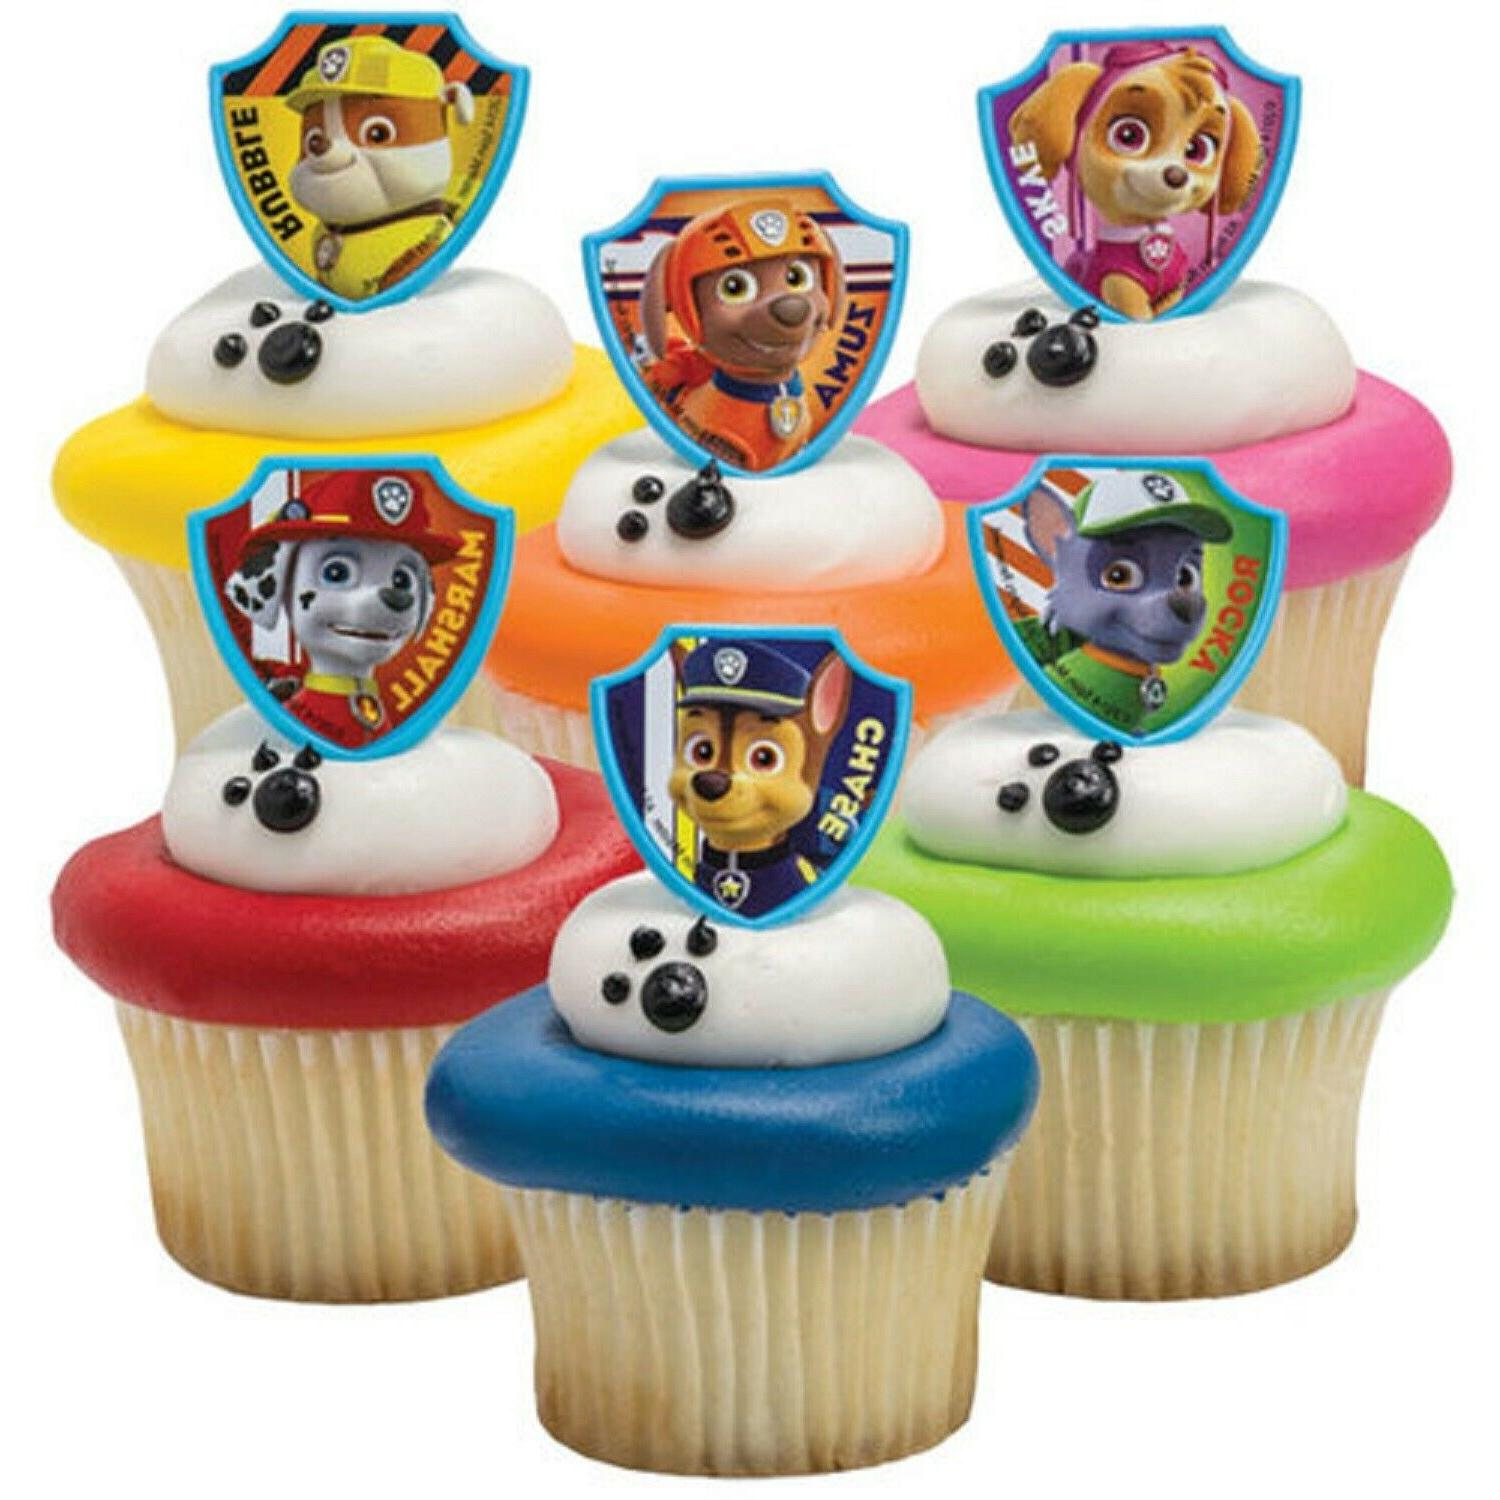 20 PAW Patrol Cupcake Toppers Cake Topper Decorations Birthd